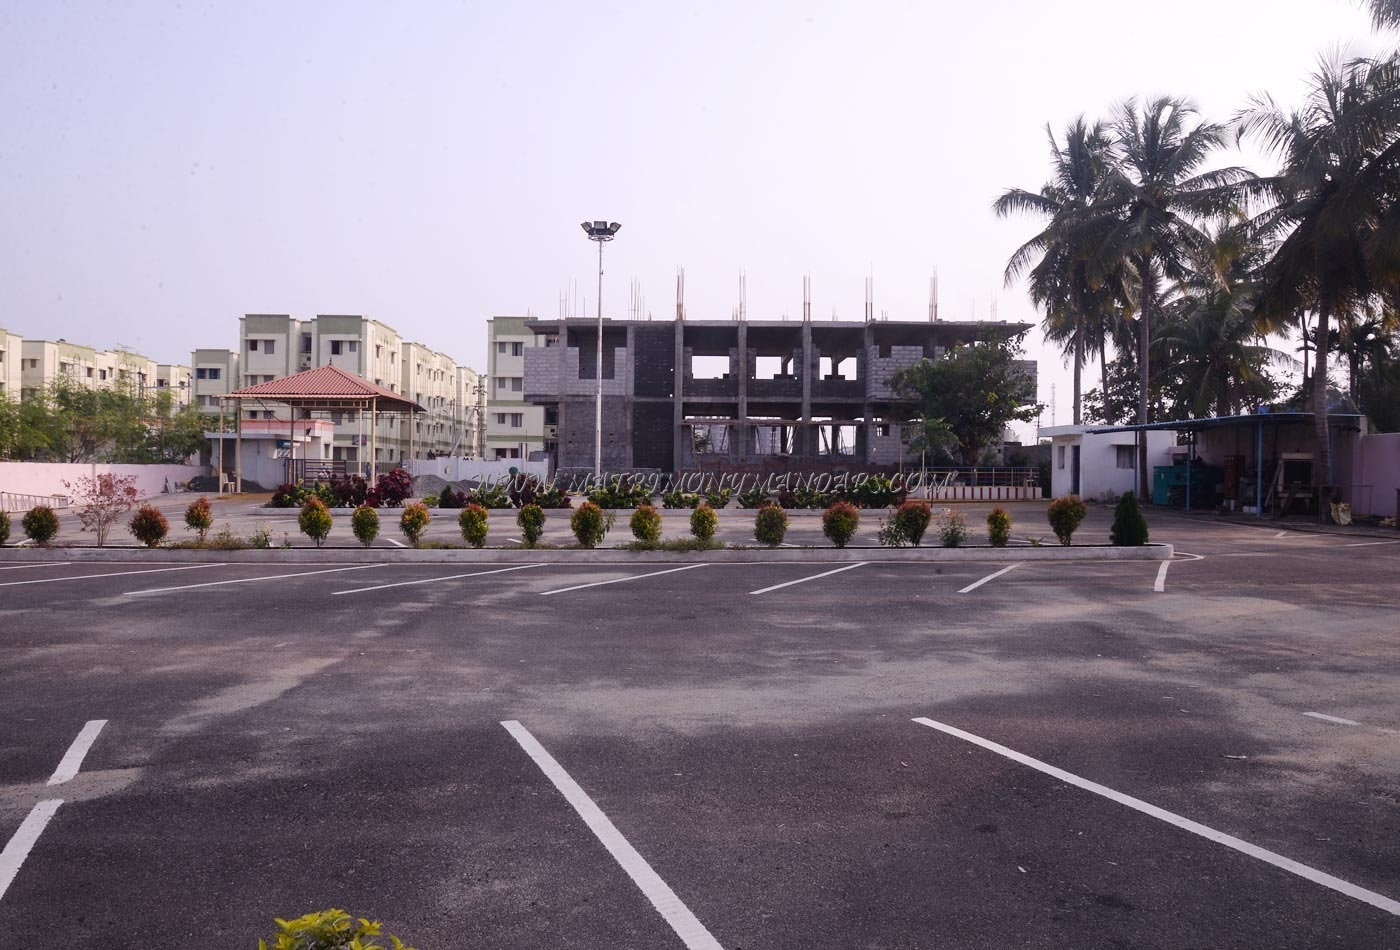 Find the availability of the Senthur Mahal  (A/C) in Vellalore, Coimbatore and avail special offers